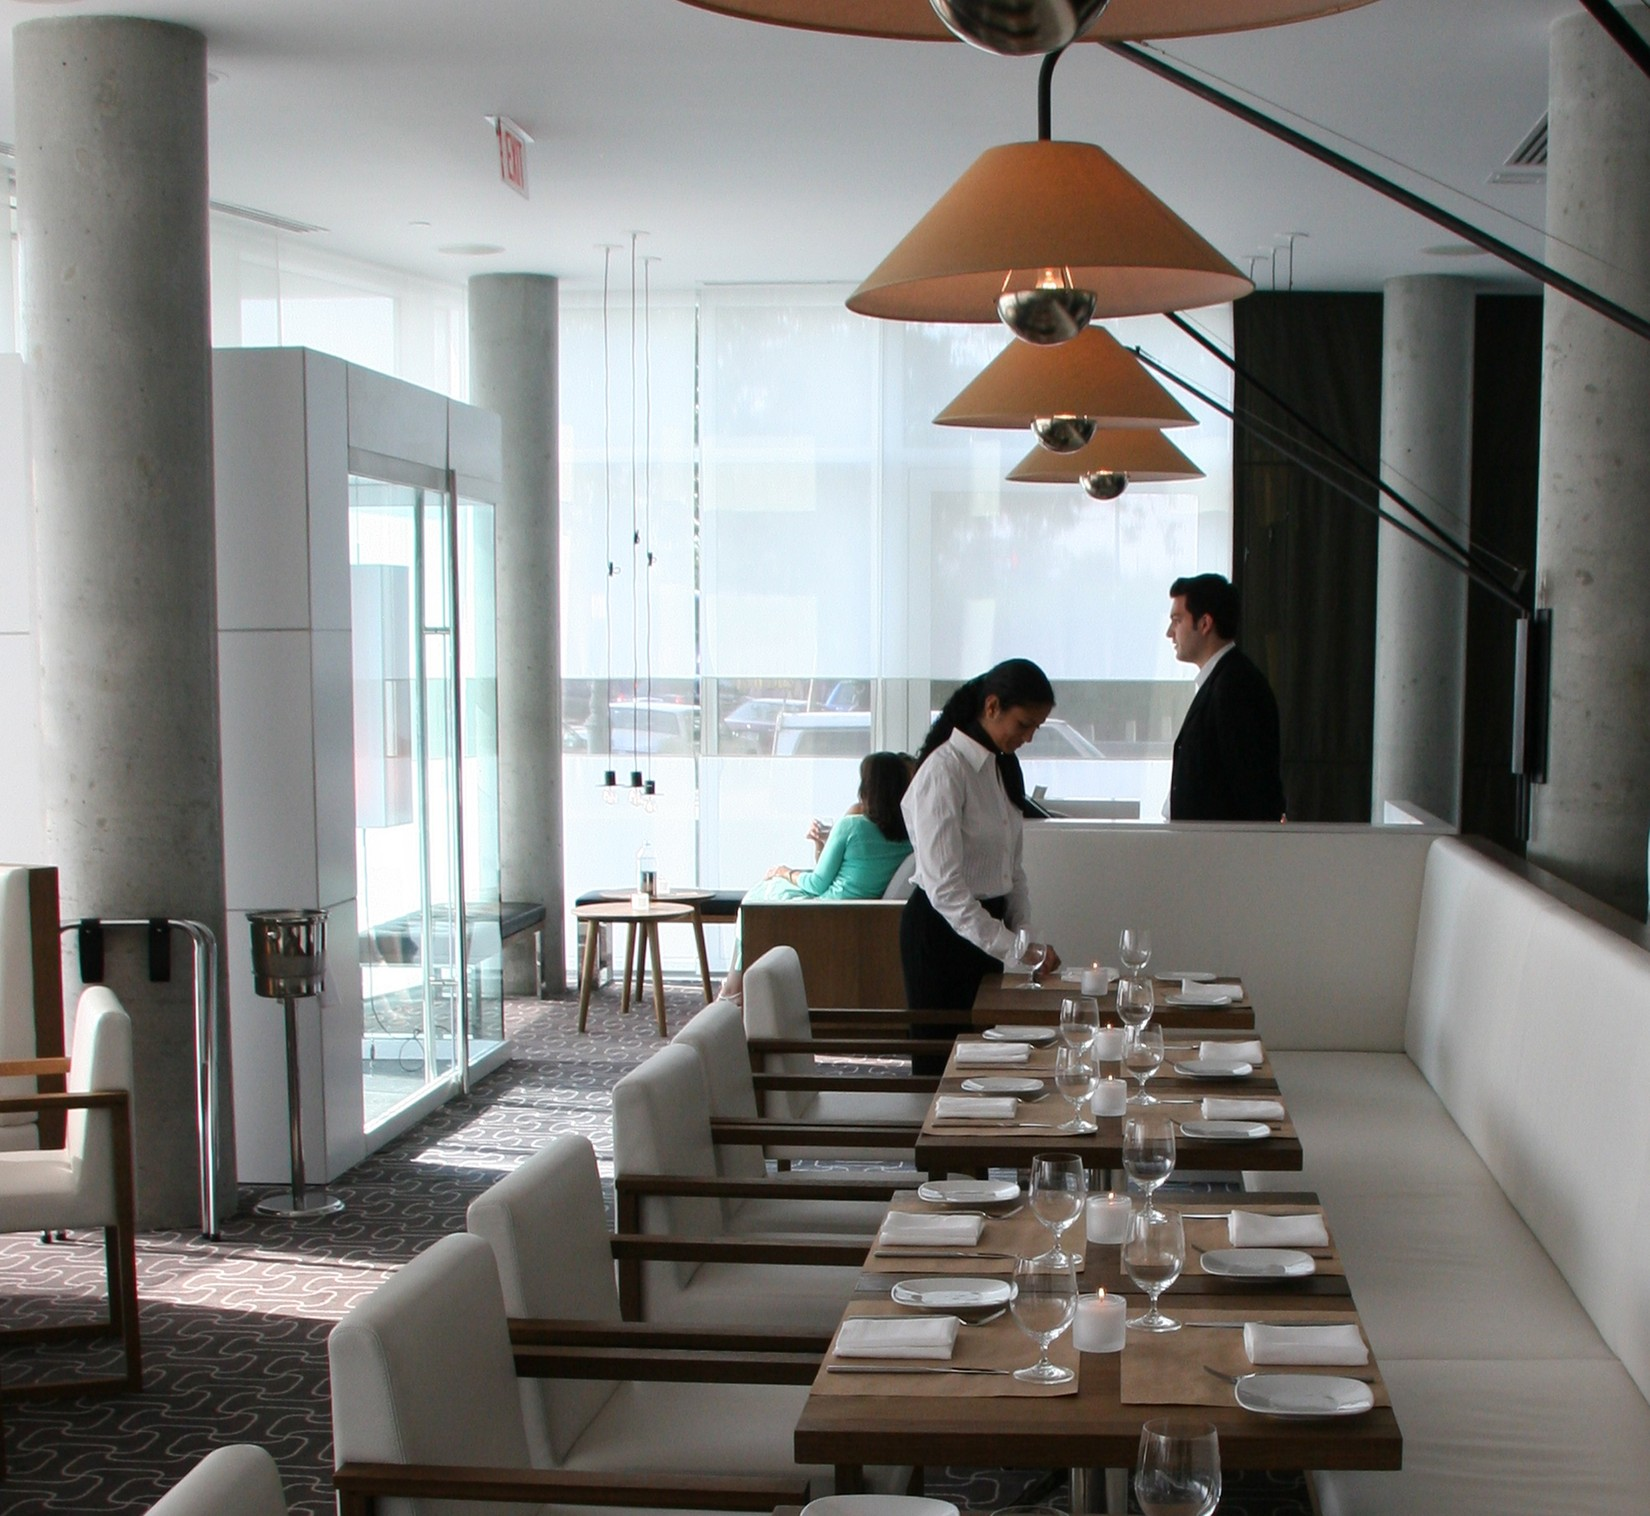 Best Private Dining Rooms In Nyc: The Infatuation